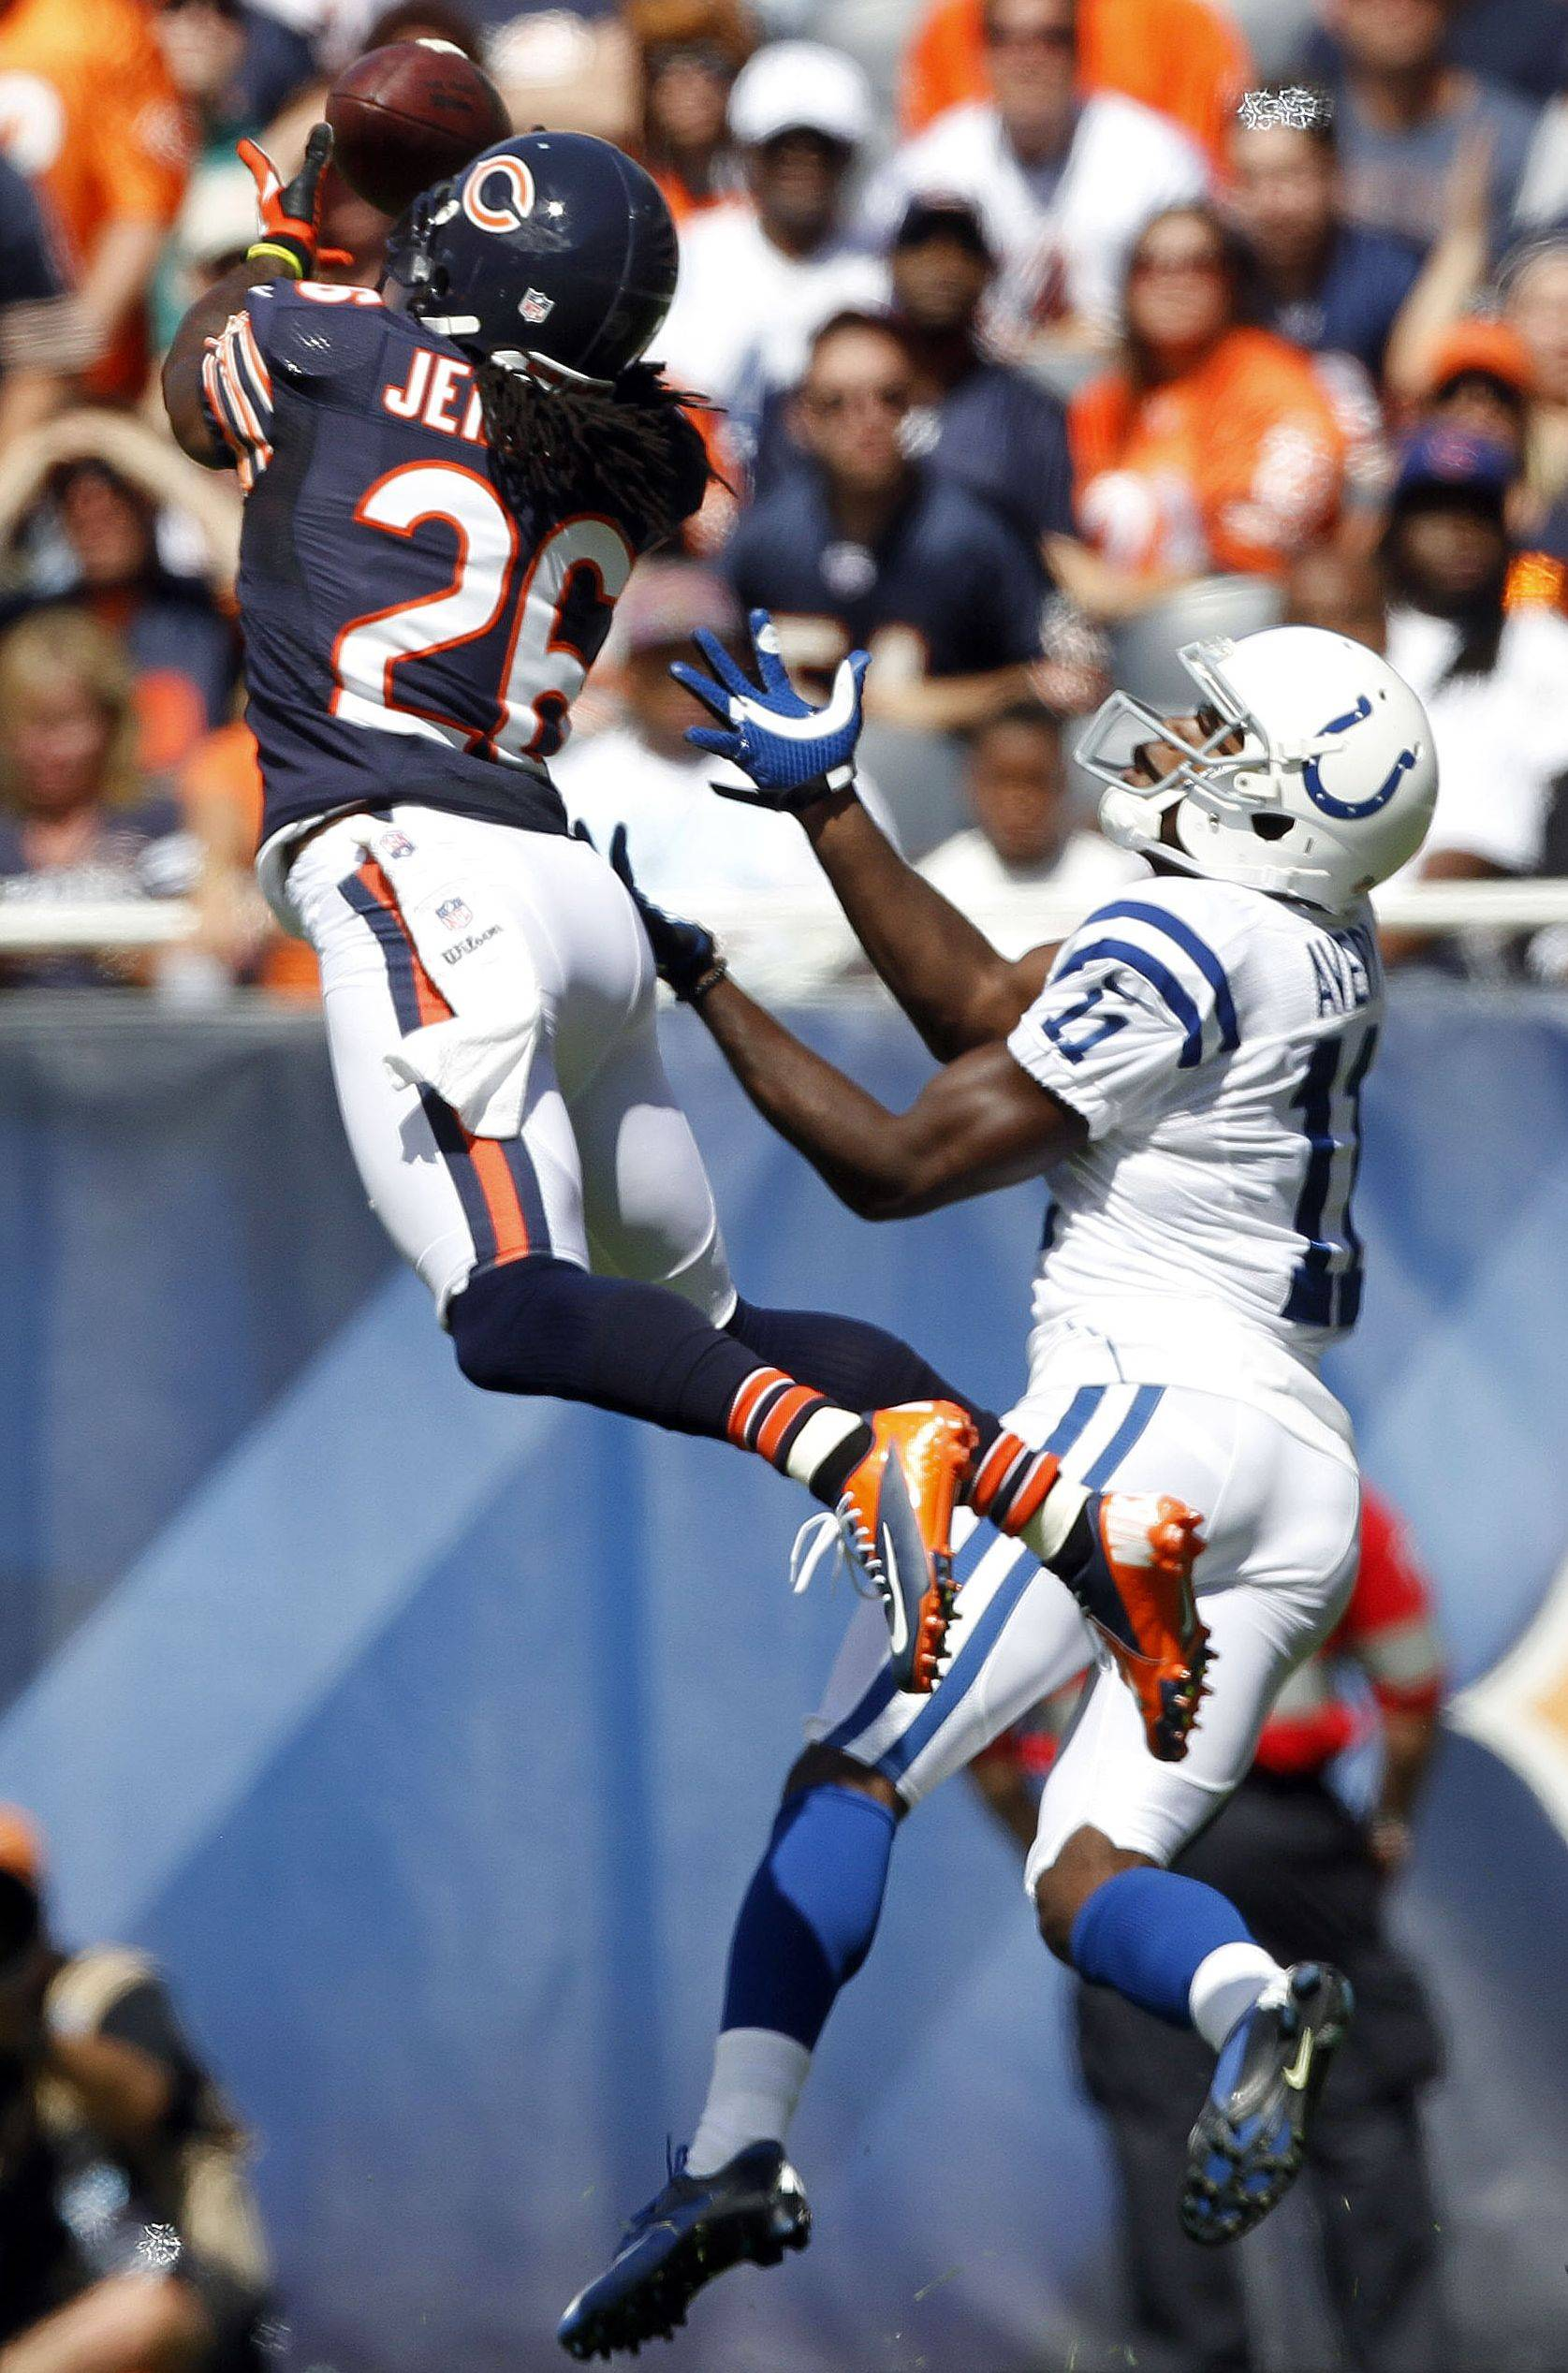 Cornerback Tim Jennings intercepts a pass intended for Colts wide receiver Donnie Avery on Sunday.